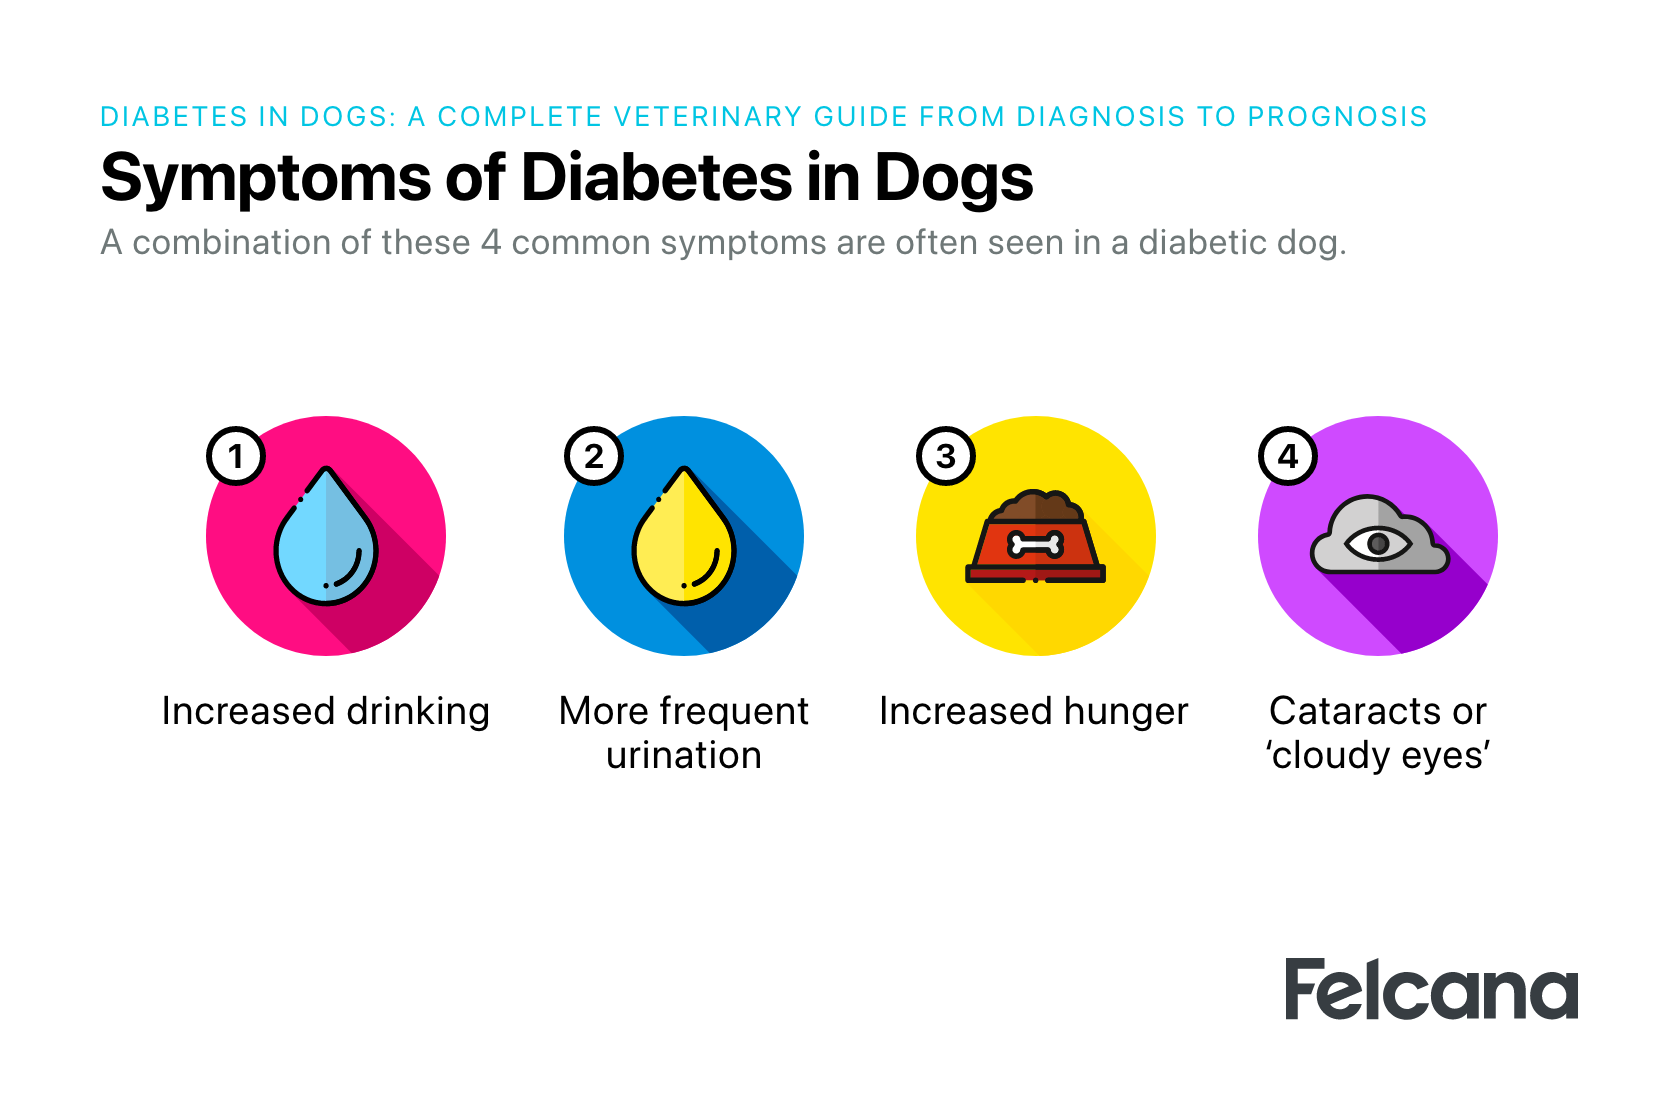 4 main symptoms of diabetes in dogs, mainly increased hunger, increased thirst, increased urination, cataracts